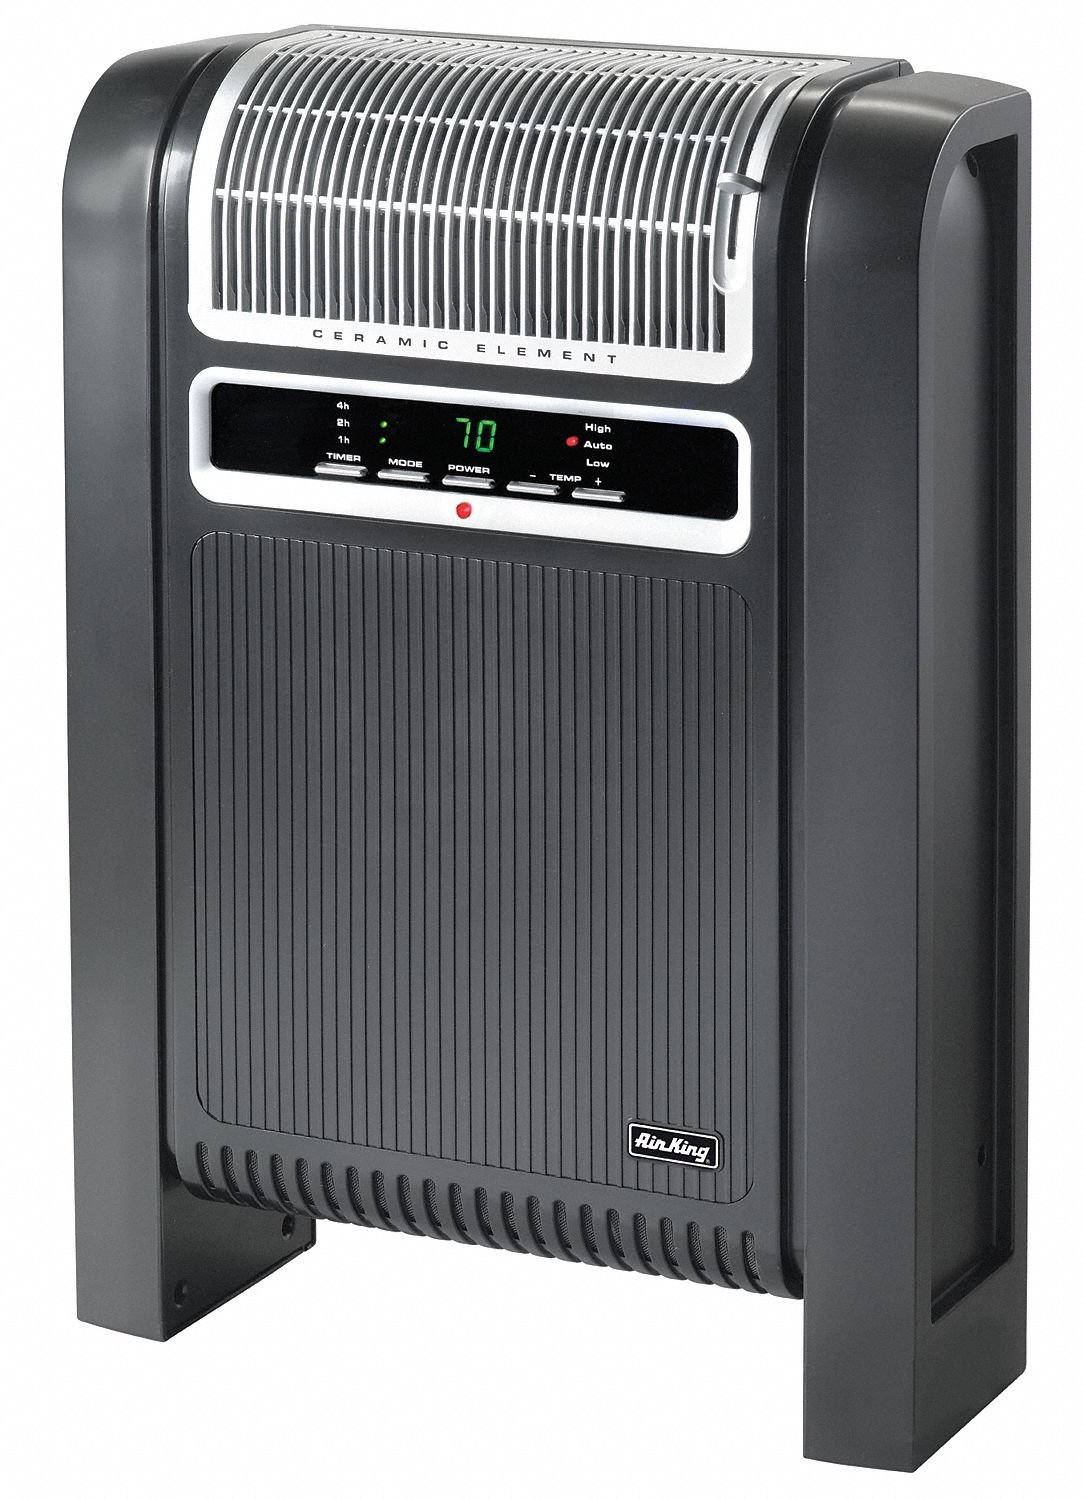 """AIR King 6-1/2"""" x 16-11/16"""" x 24-15/16"""" Fan Forced Electric Space Heater, Black/Silver, 120VAC"""